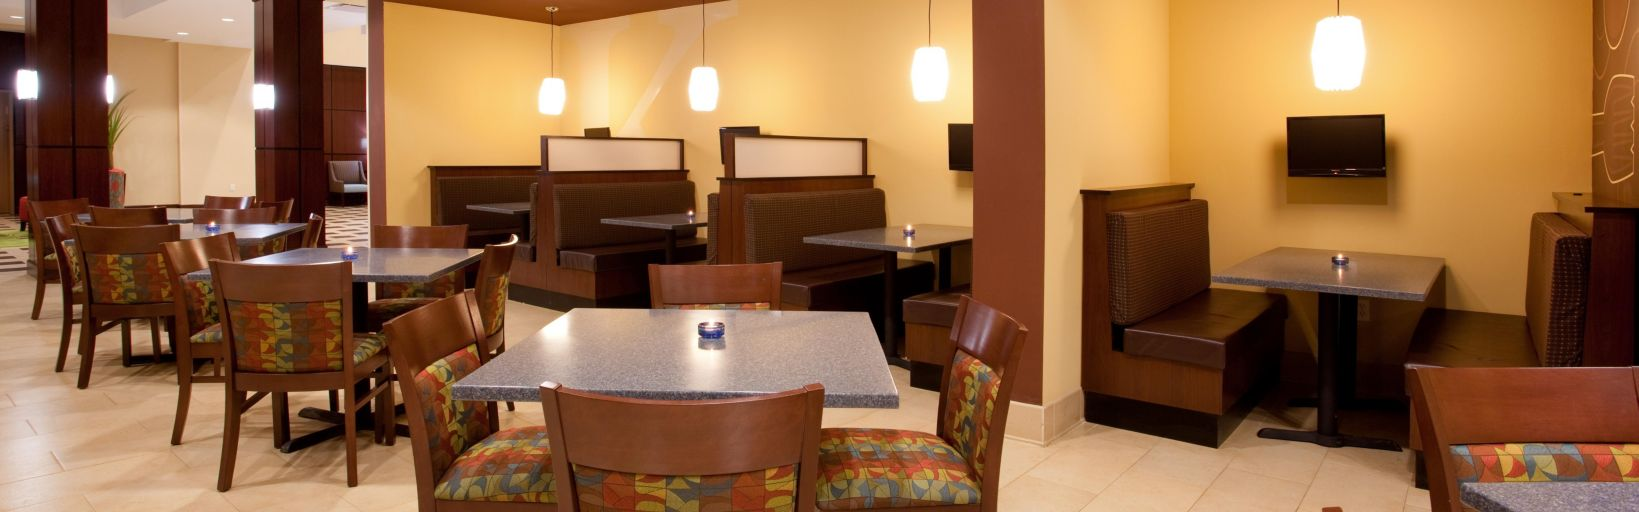 Kem 39 S Restaurant With Booths And Private Tvs